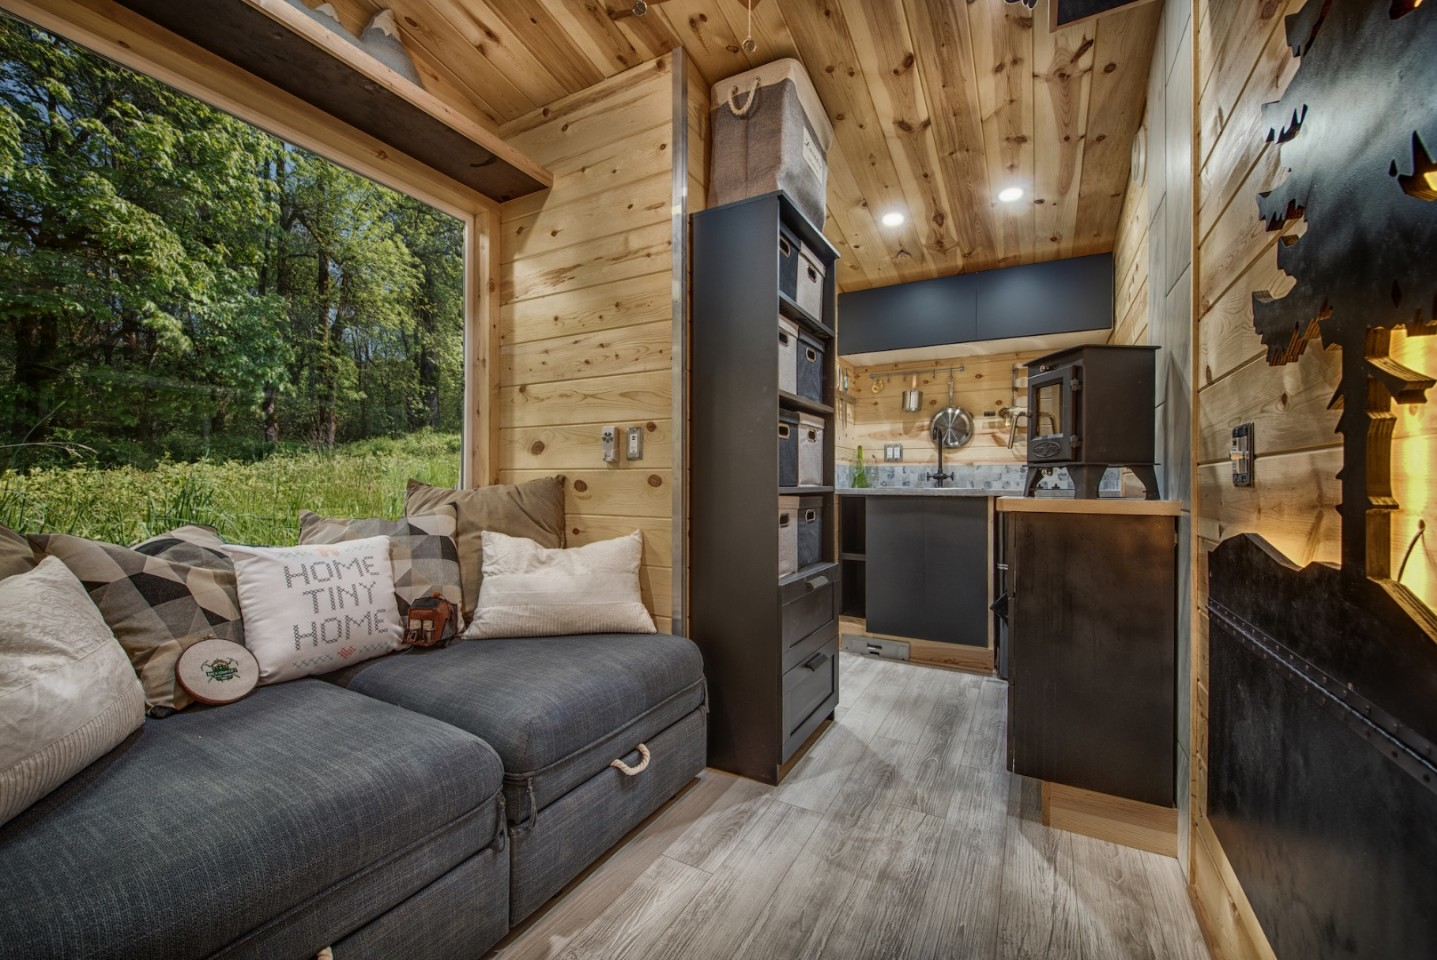 space-saving living room for portable home